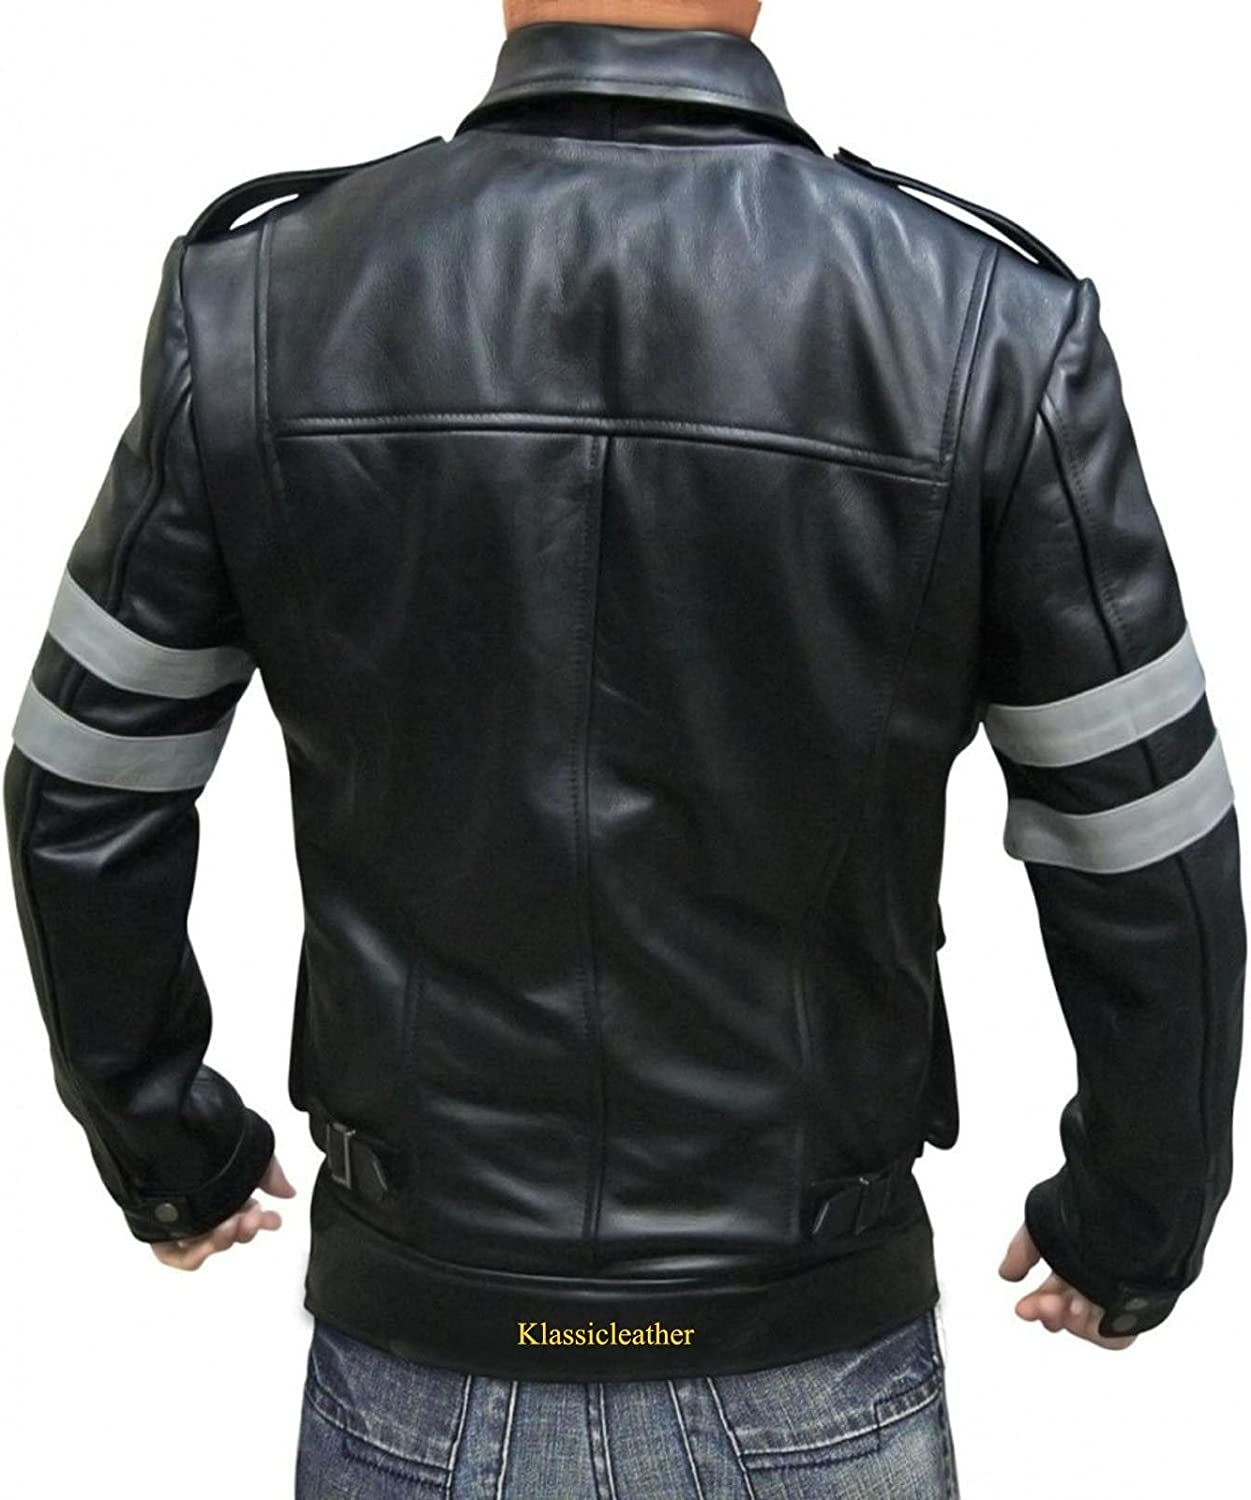 Travel Hide Mens Leather Jacket Motorcycle Genuine Lambskin Biker Jacket TM029